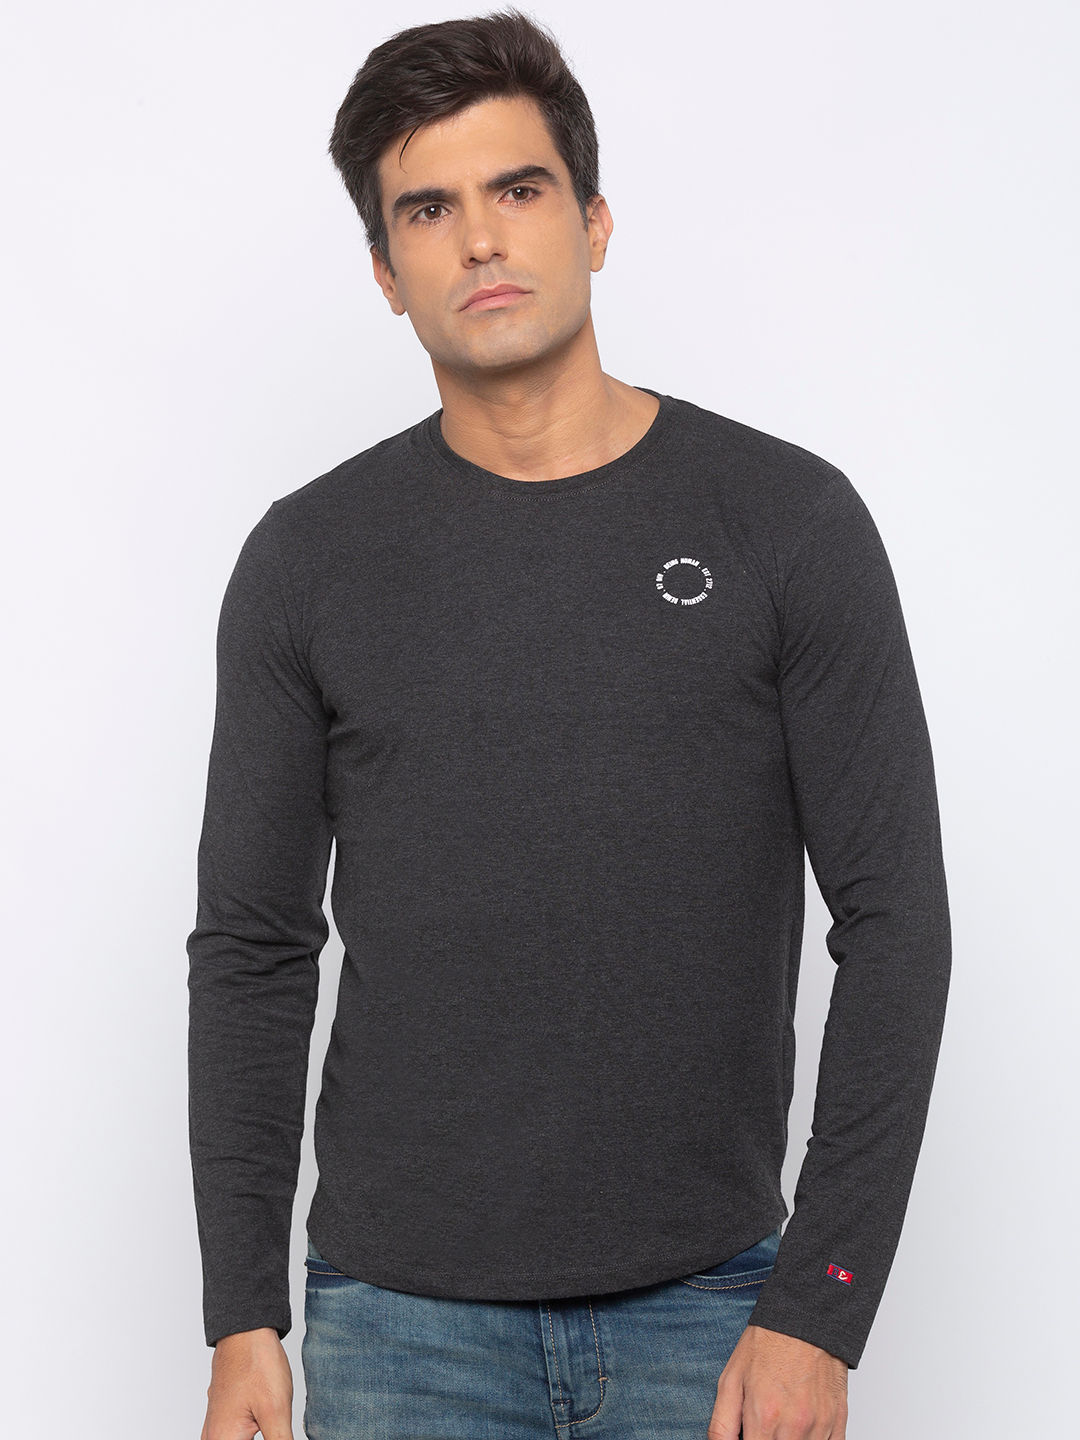 Mens Long Sleeve Crew Neck with HD print